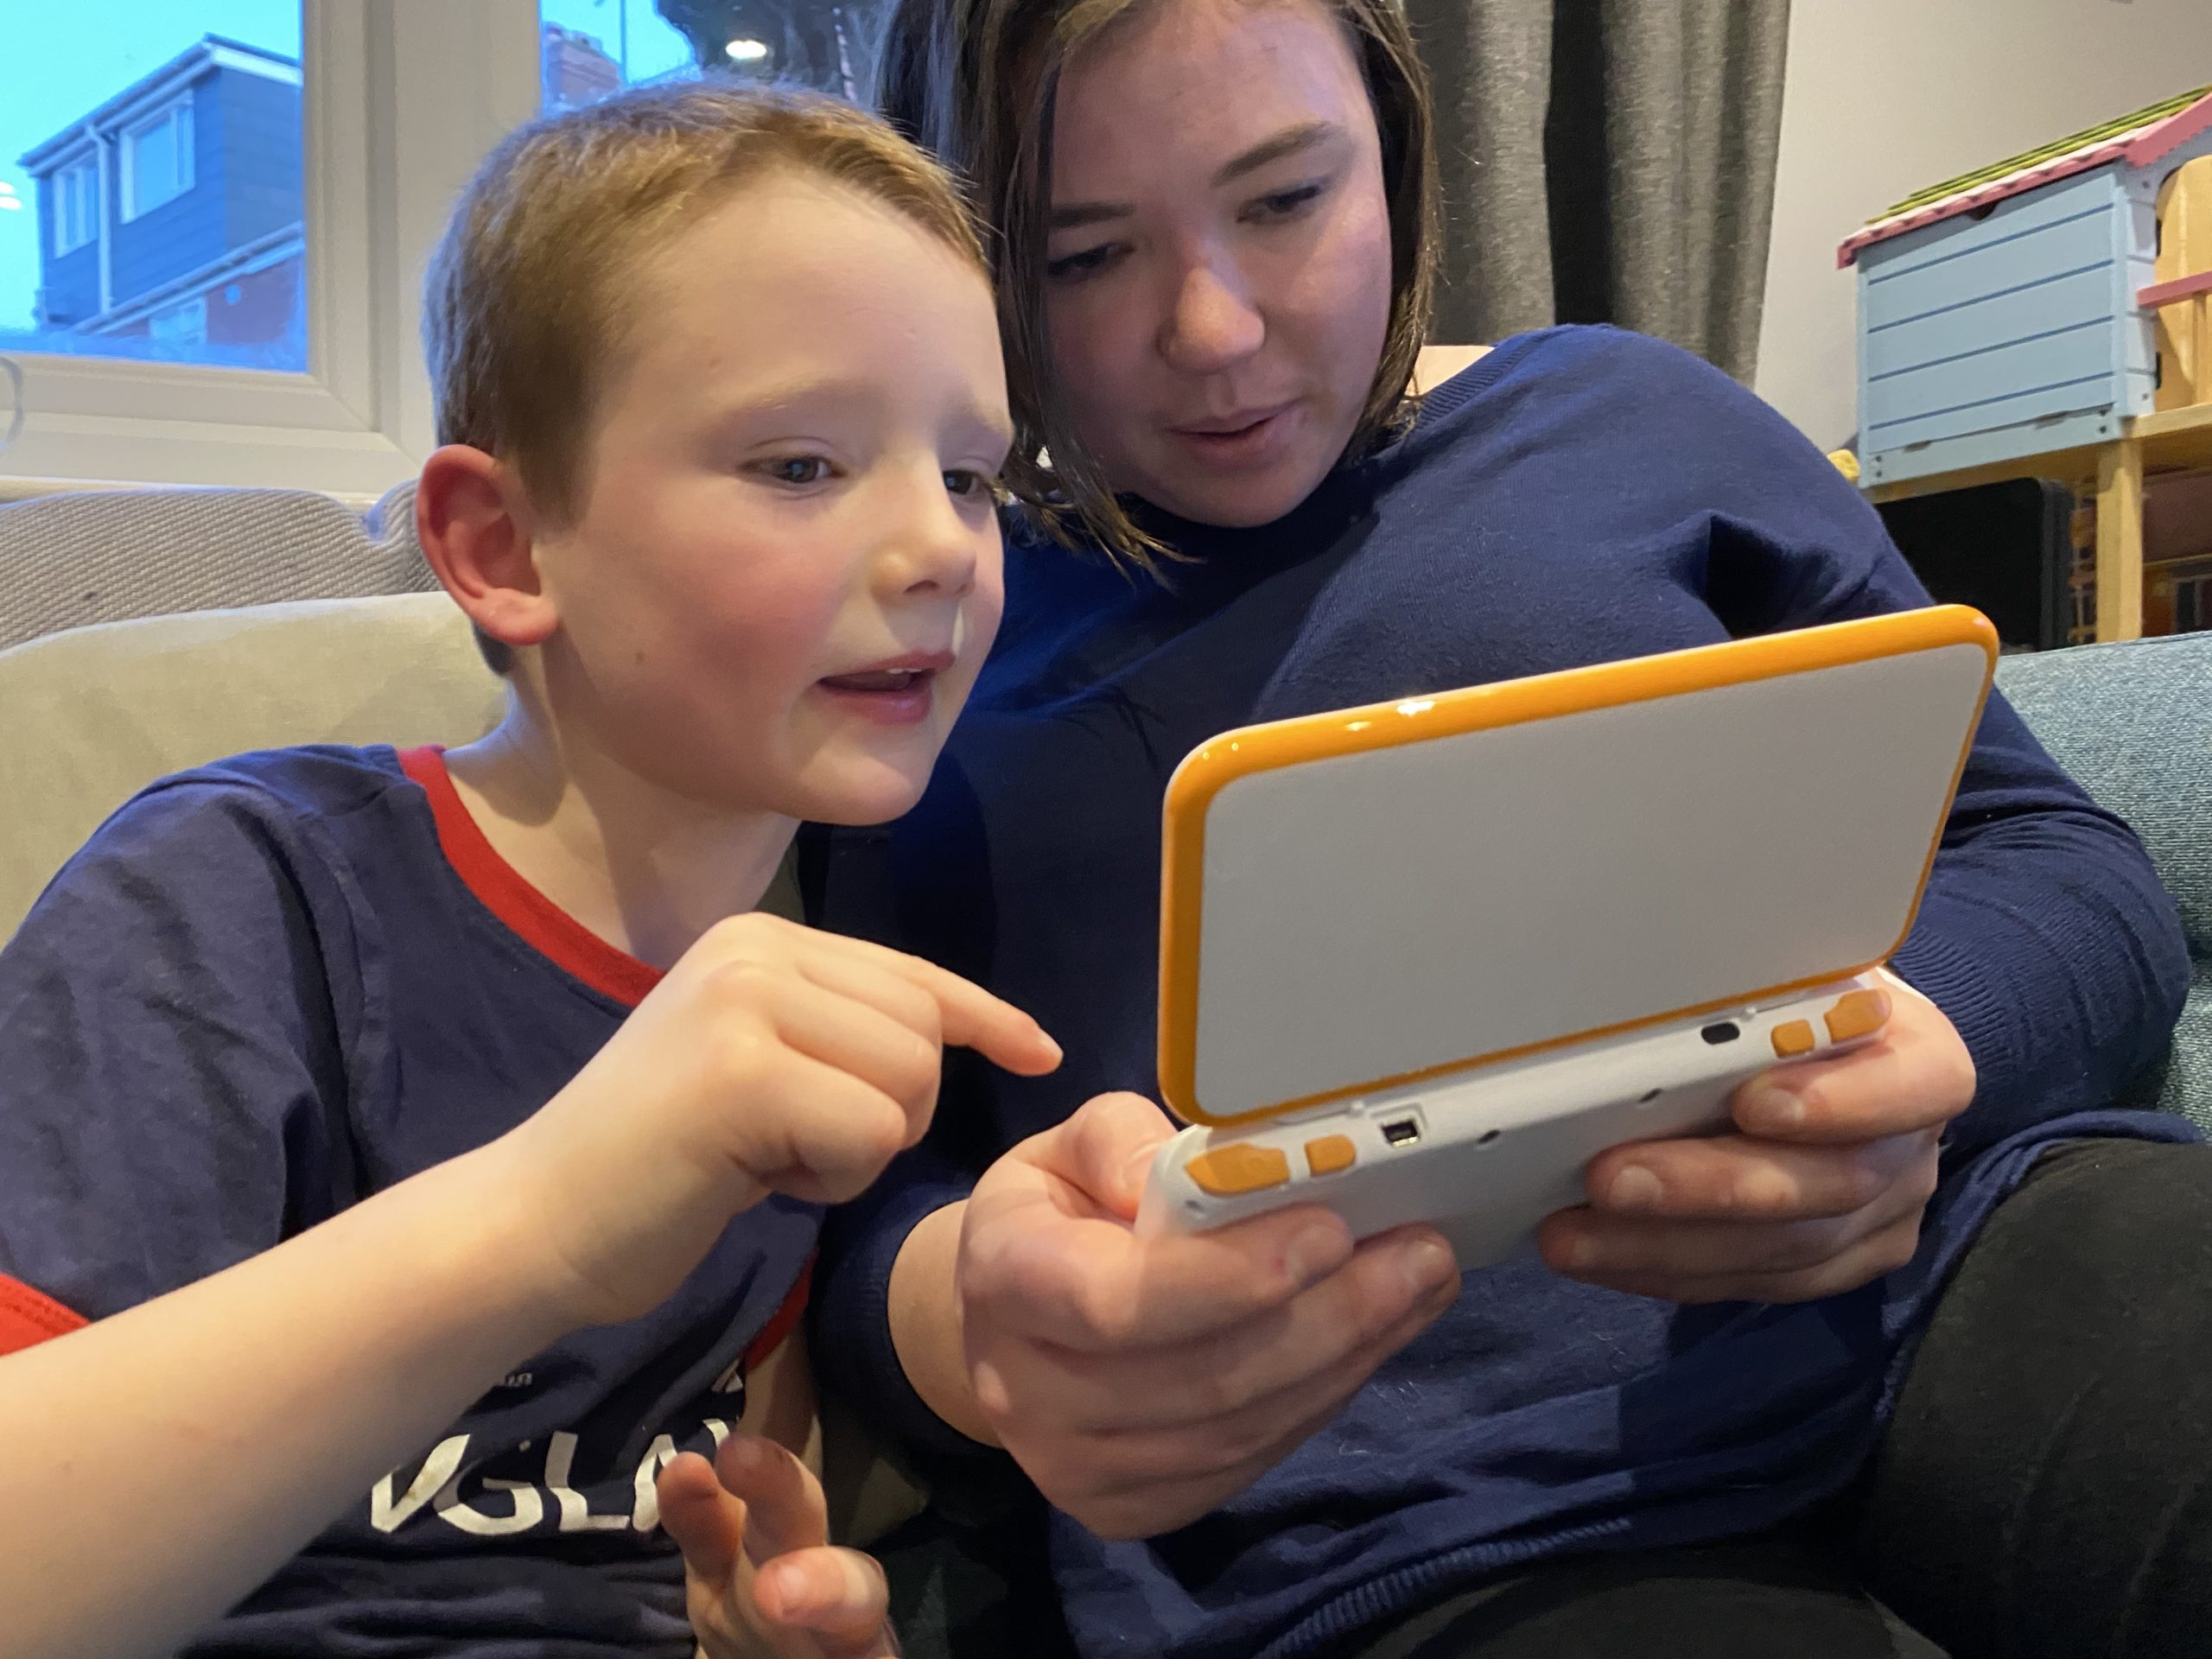 mum and child playing video games